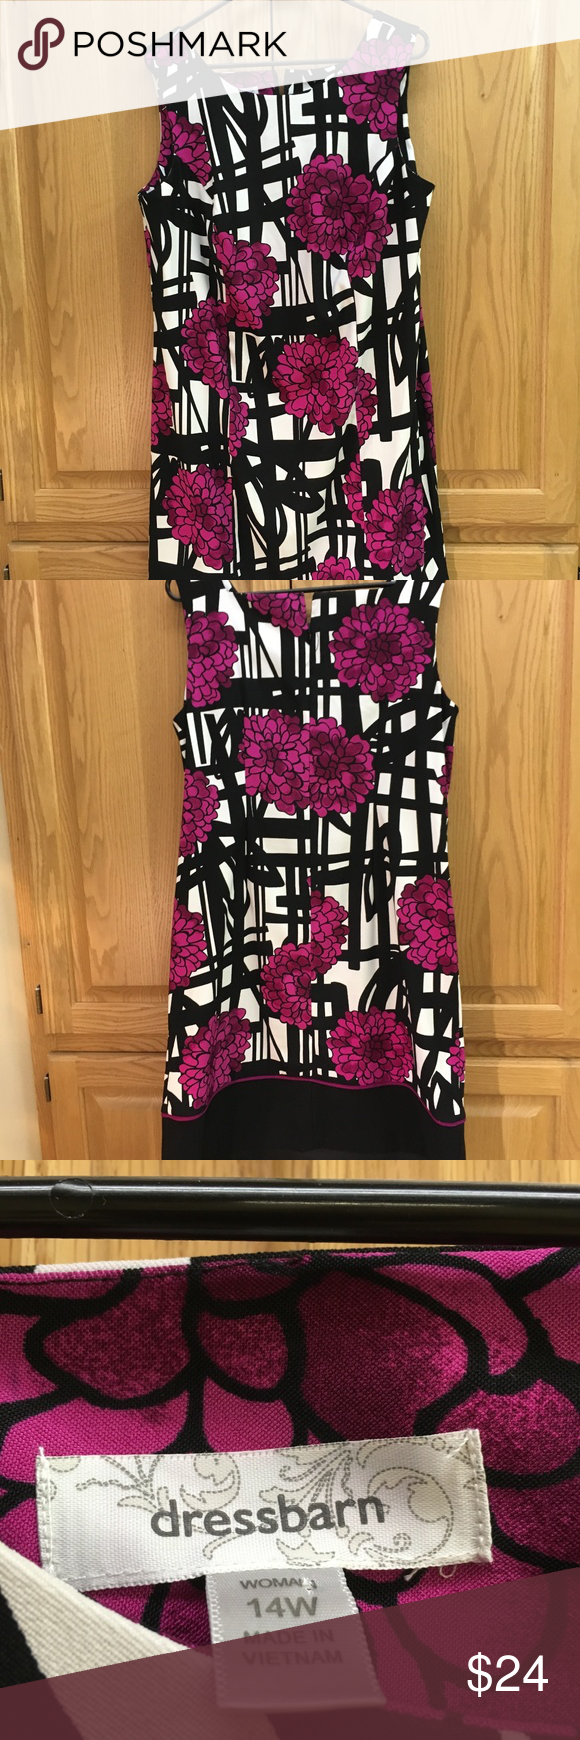 Dress Barn sleeveless dress - 14W Dress Barn sleeveless dress - 14W  Floral print.  Black, white with fuscia flowers.  37 collar to hem.  Approx. 42 bust.  Gently used with no flaws.  See photos for details Dress Barn Dresses #blacksleevelessdress